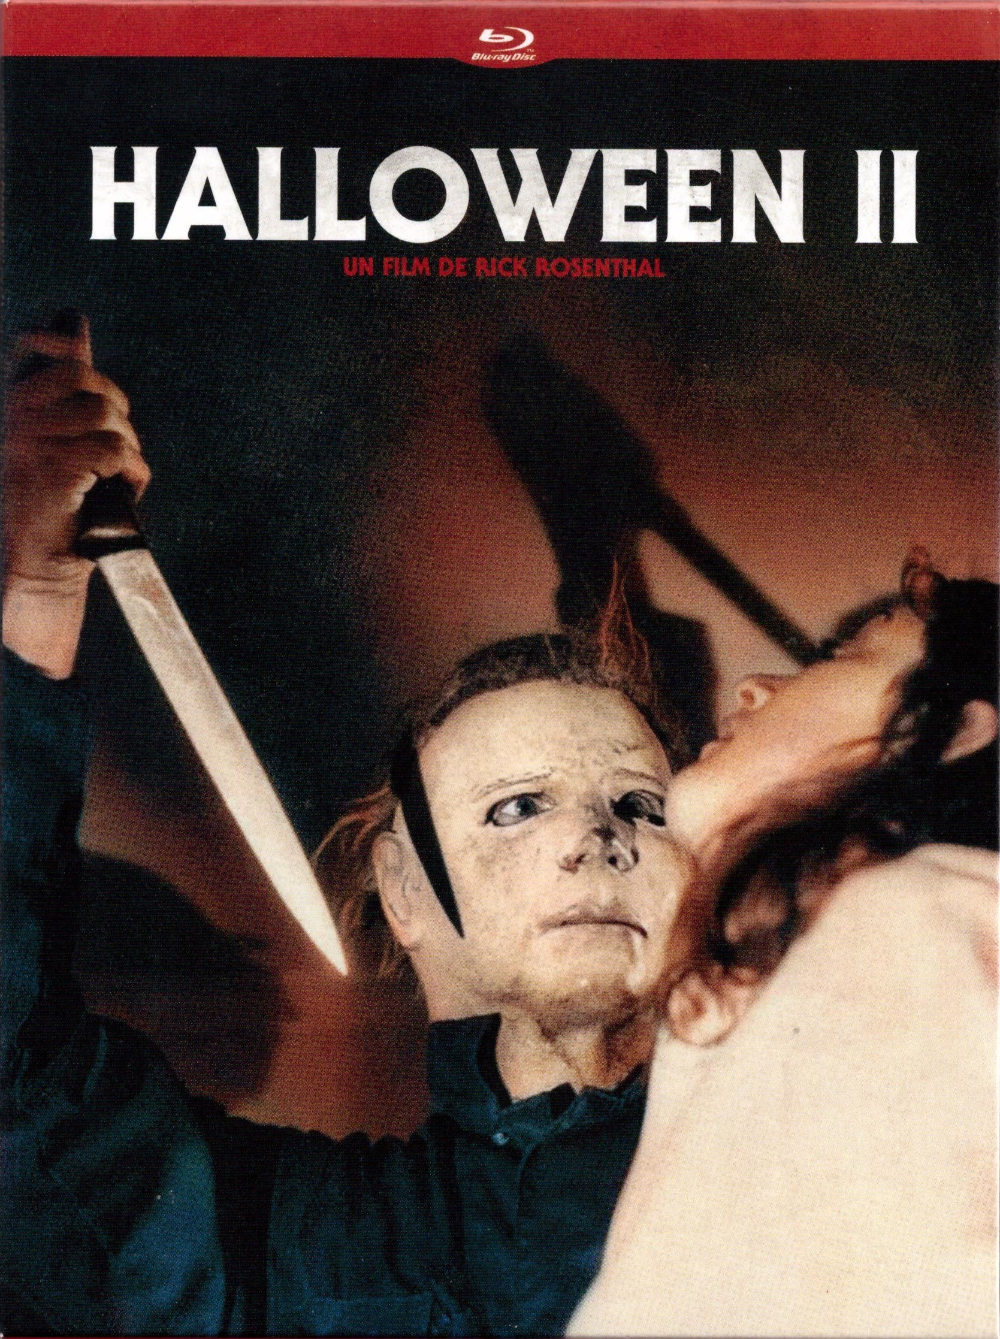 Halloween 2020 Blu Ray Relese Halloween II Blu ray Release Date January 1, 2020 (DigiPack